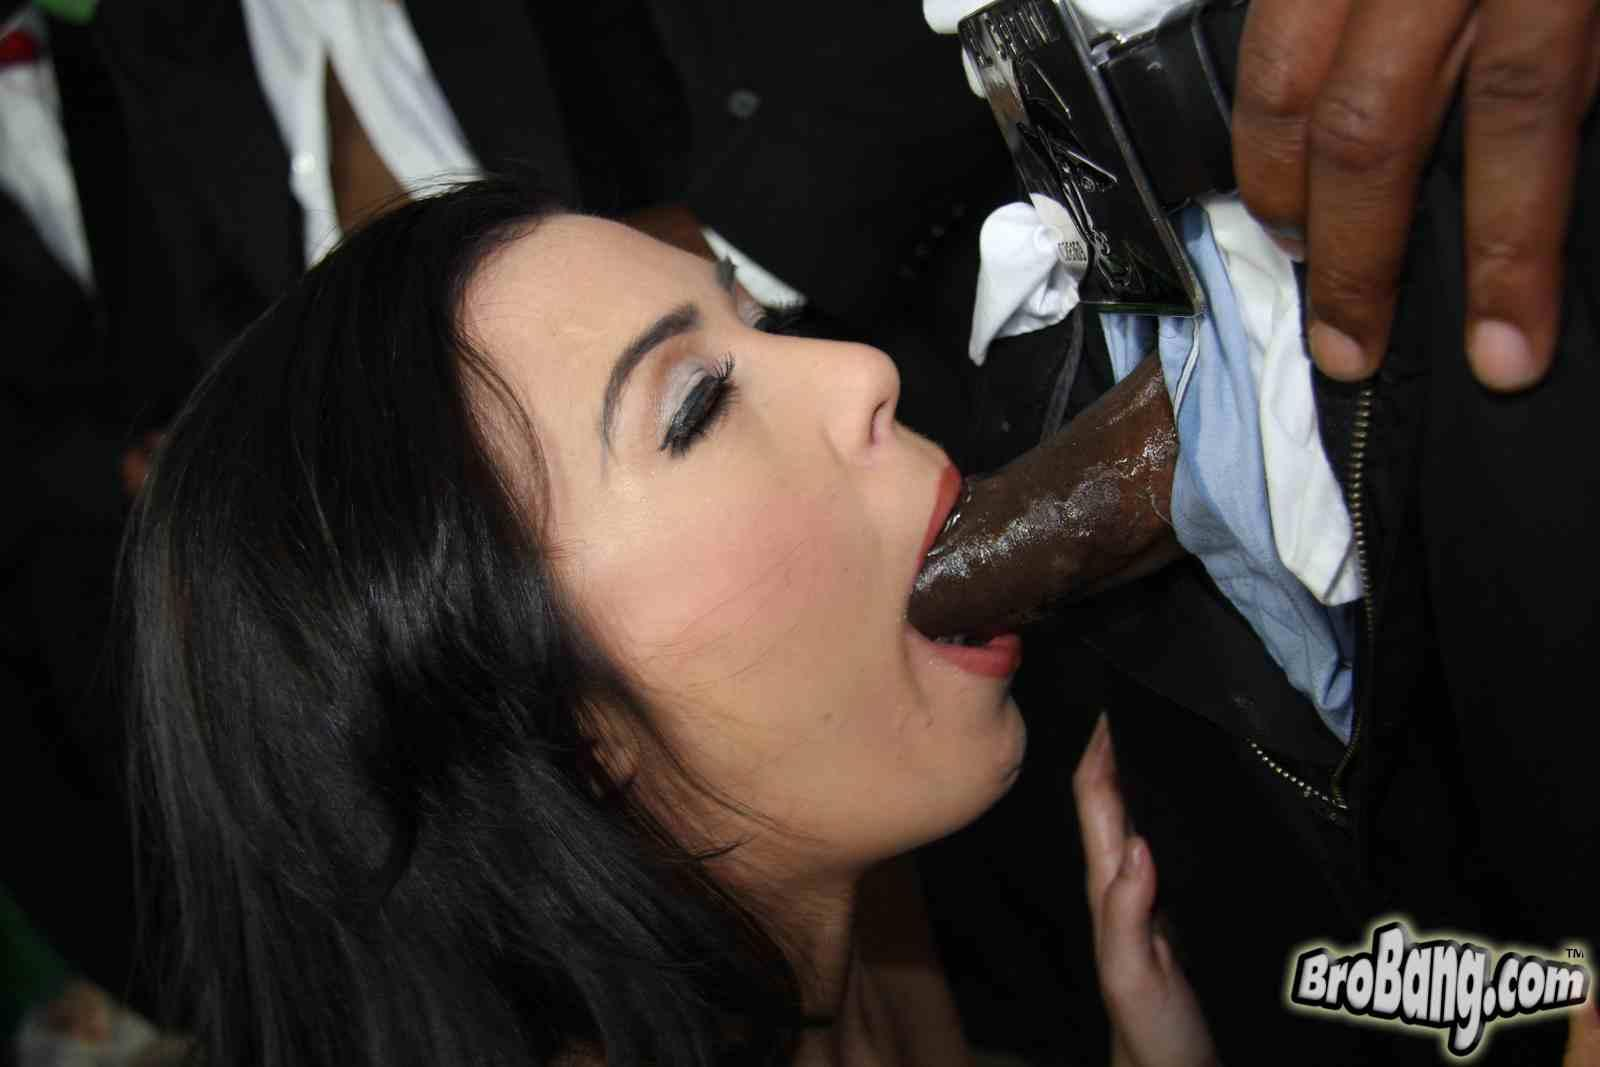 ashley blue cum drinking porn showing media posts for ashley blue cum jpg 1